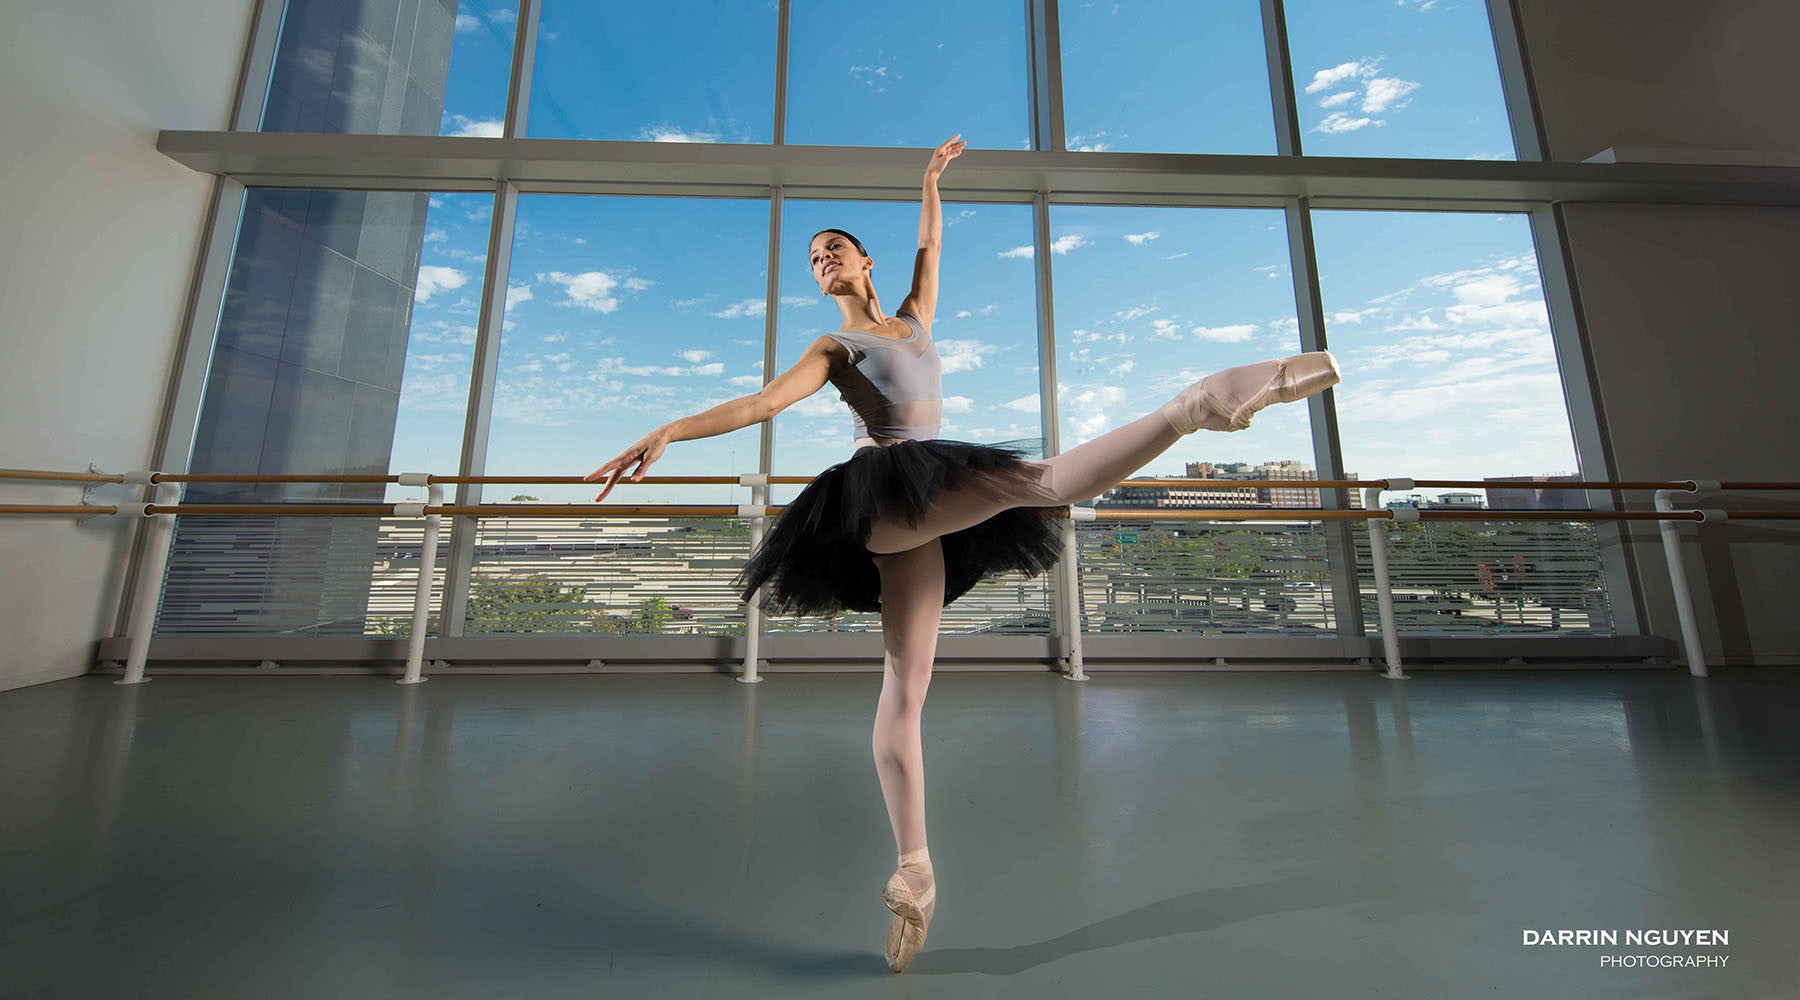 Karina Gonzalez - Principal dancer with Houston Ballet and Zarely Role Model